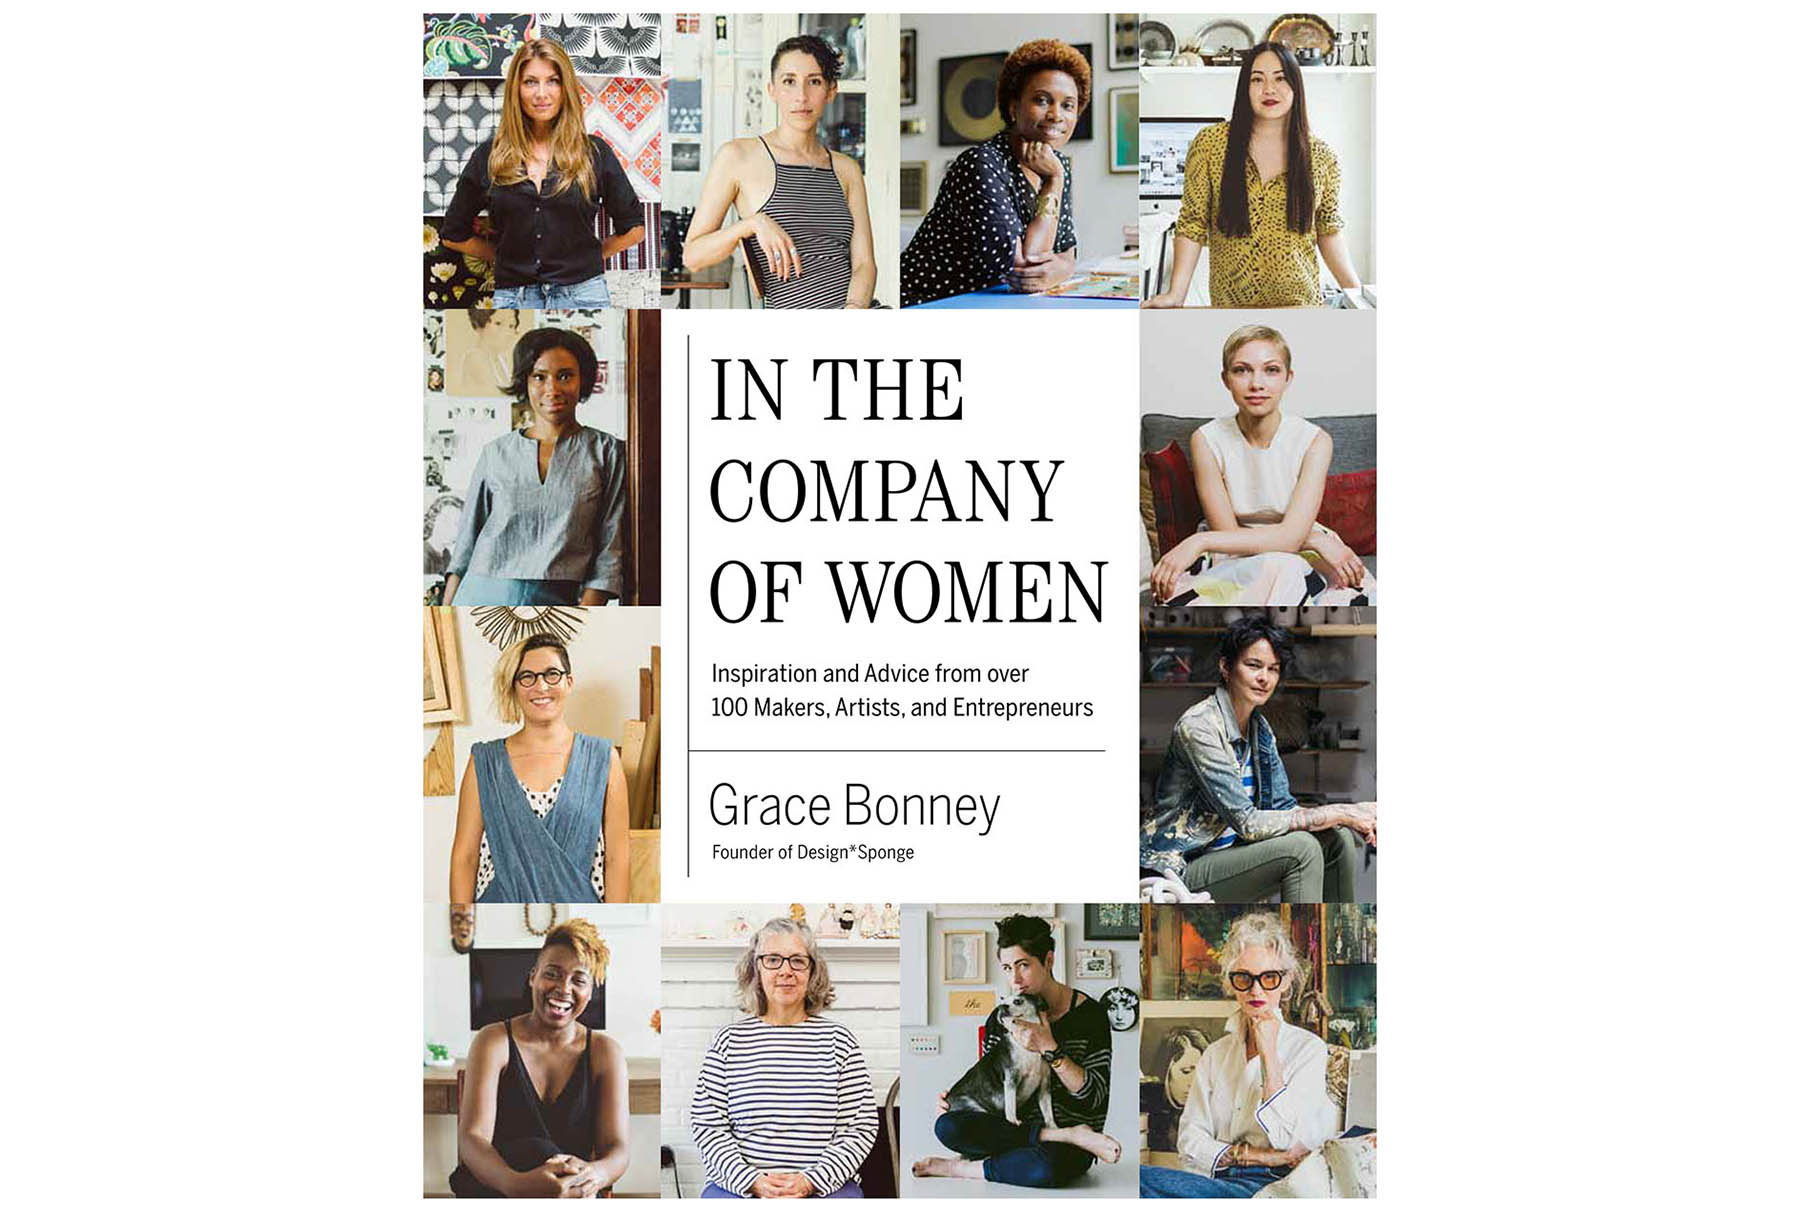 In the Company of Women: Inspiration and Advice from over 100 Makers, Artists, and Entrepreneurs, by Grace Bonney